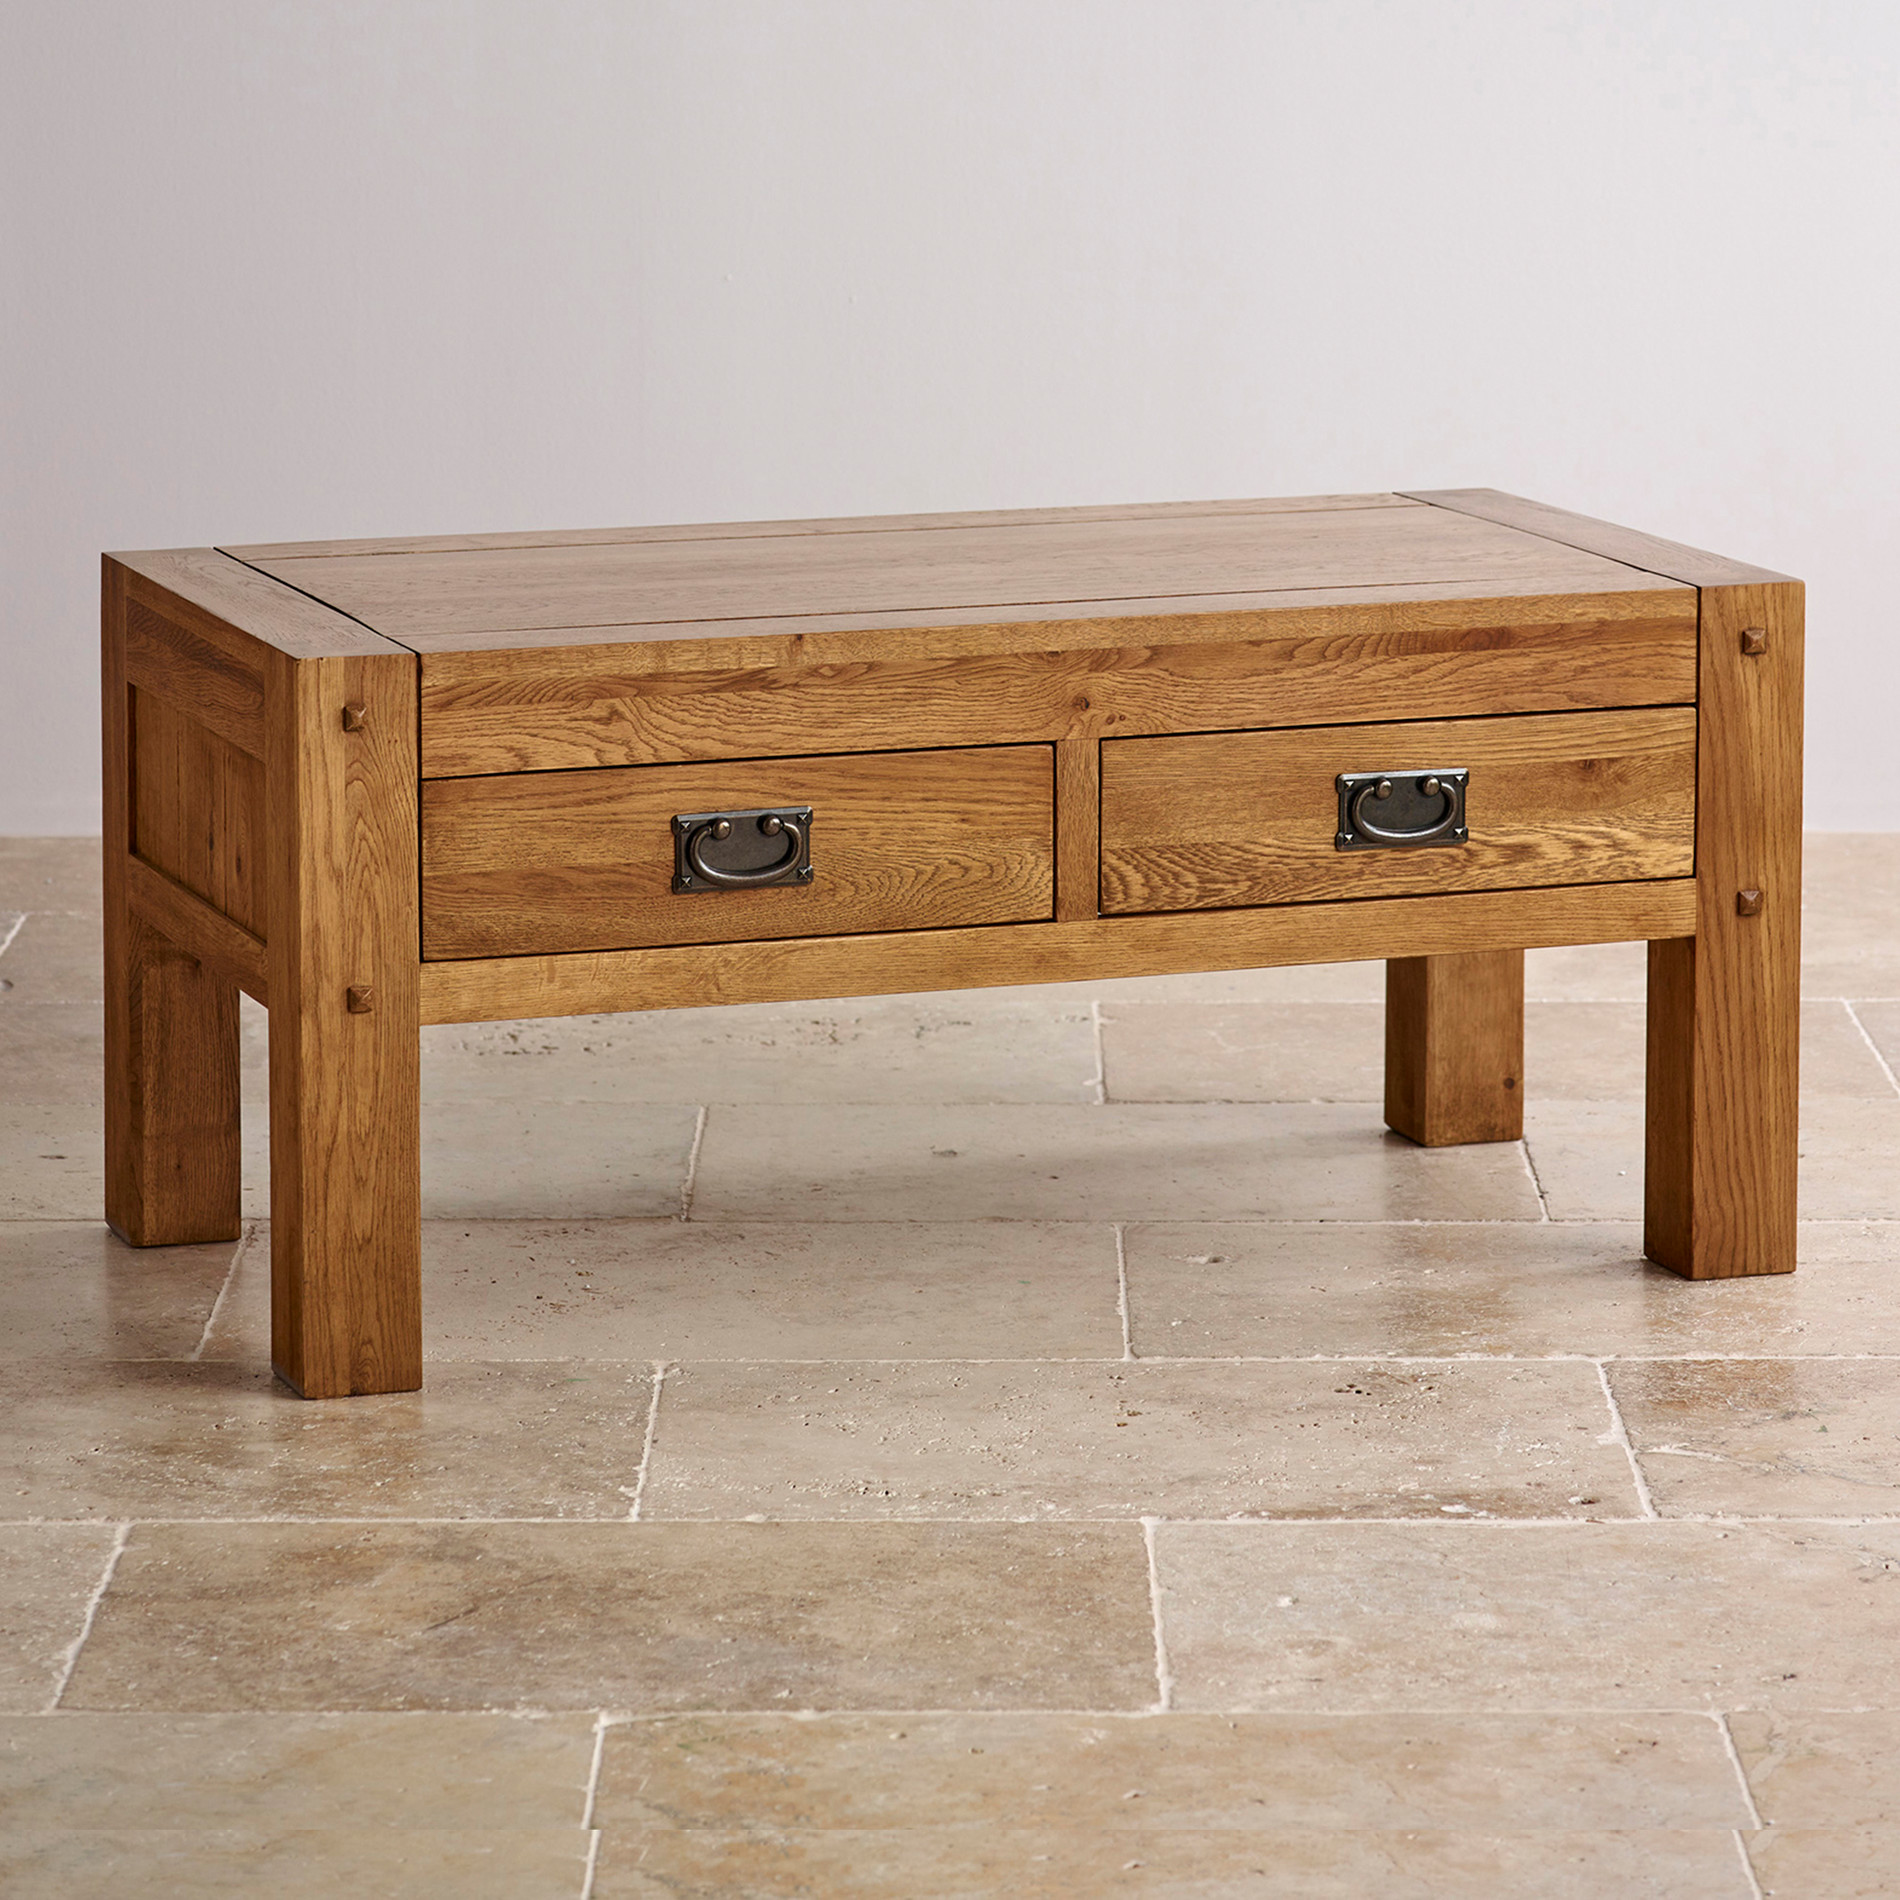 Quercus rustic solid oak coffee table with 4 drawer storage for Solid oak furniture